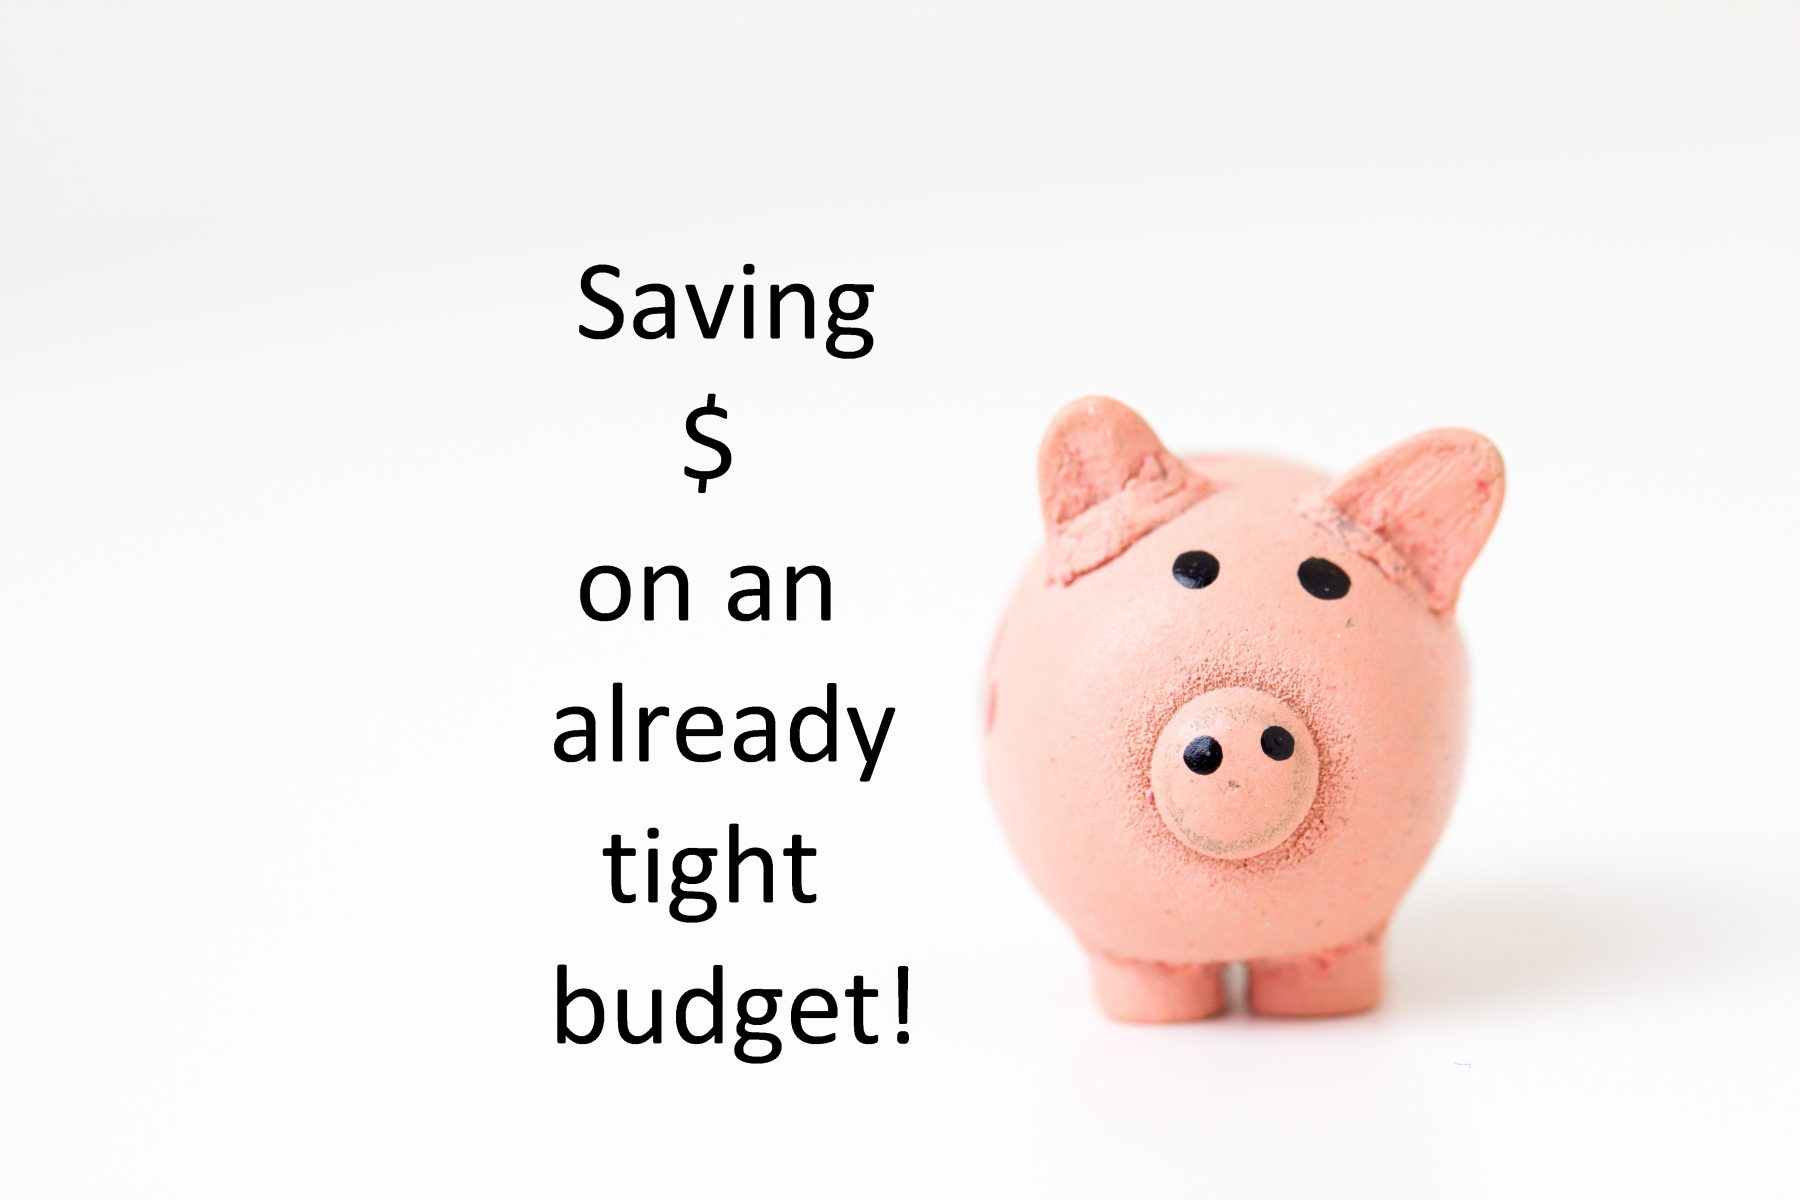 Save Even MORE Money On An Already Tight Budget